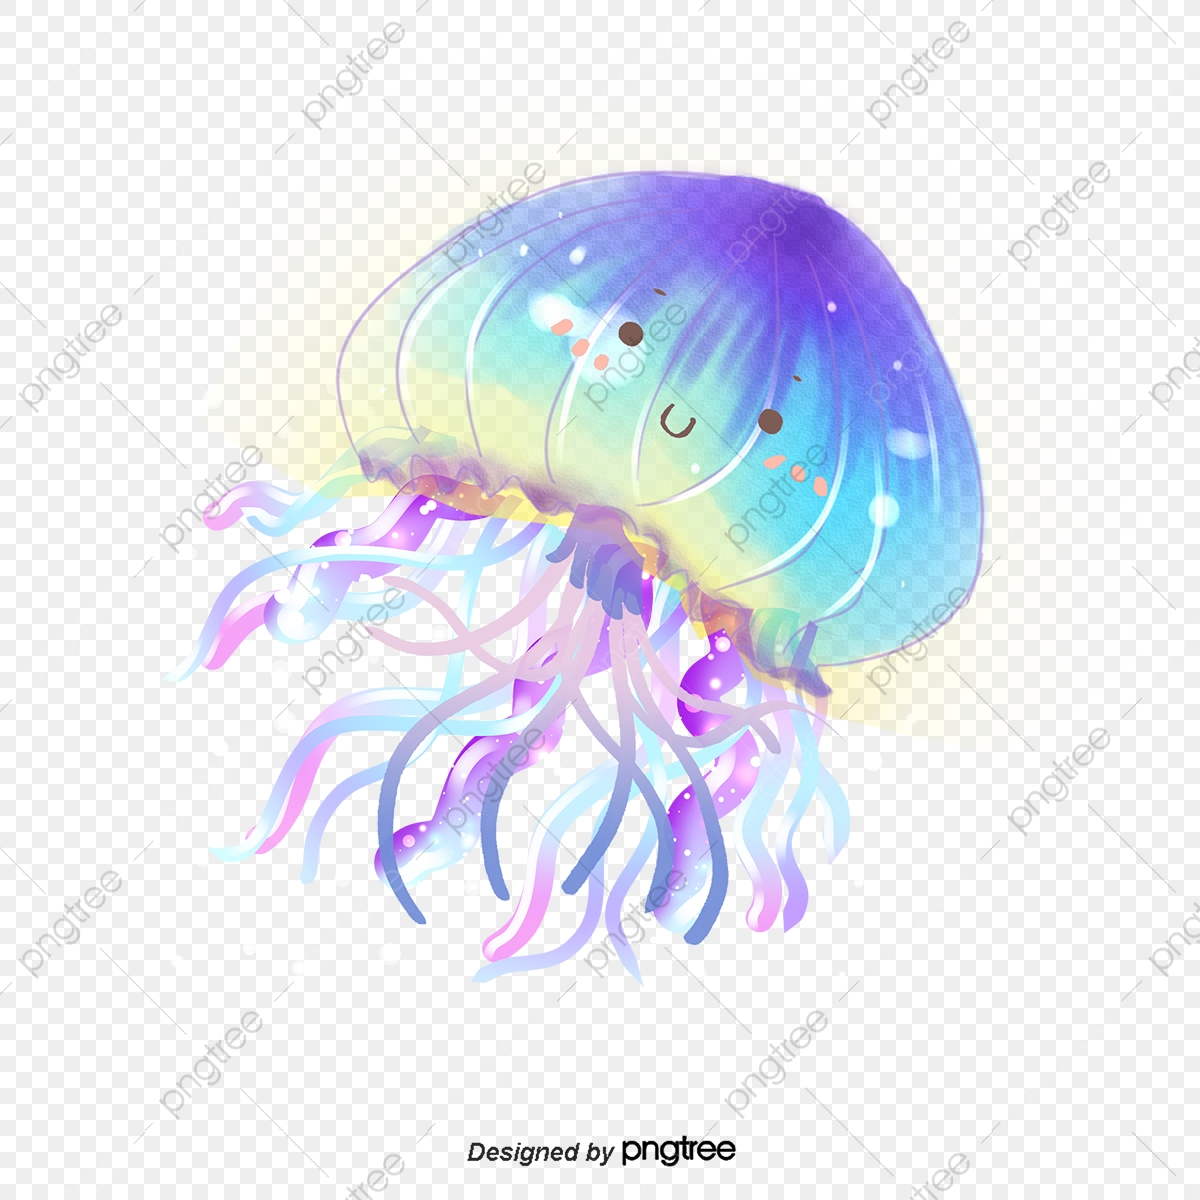 hight resolution of commercial use resource upgrade to premium plan and get license authorization upgradenow jellyfish jellyfish clipart